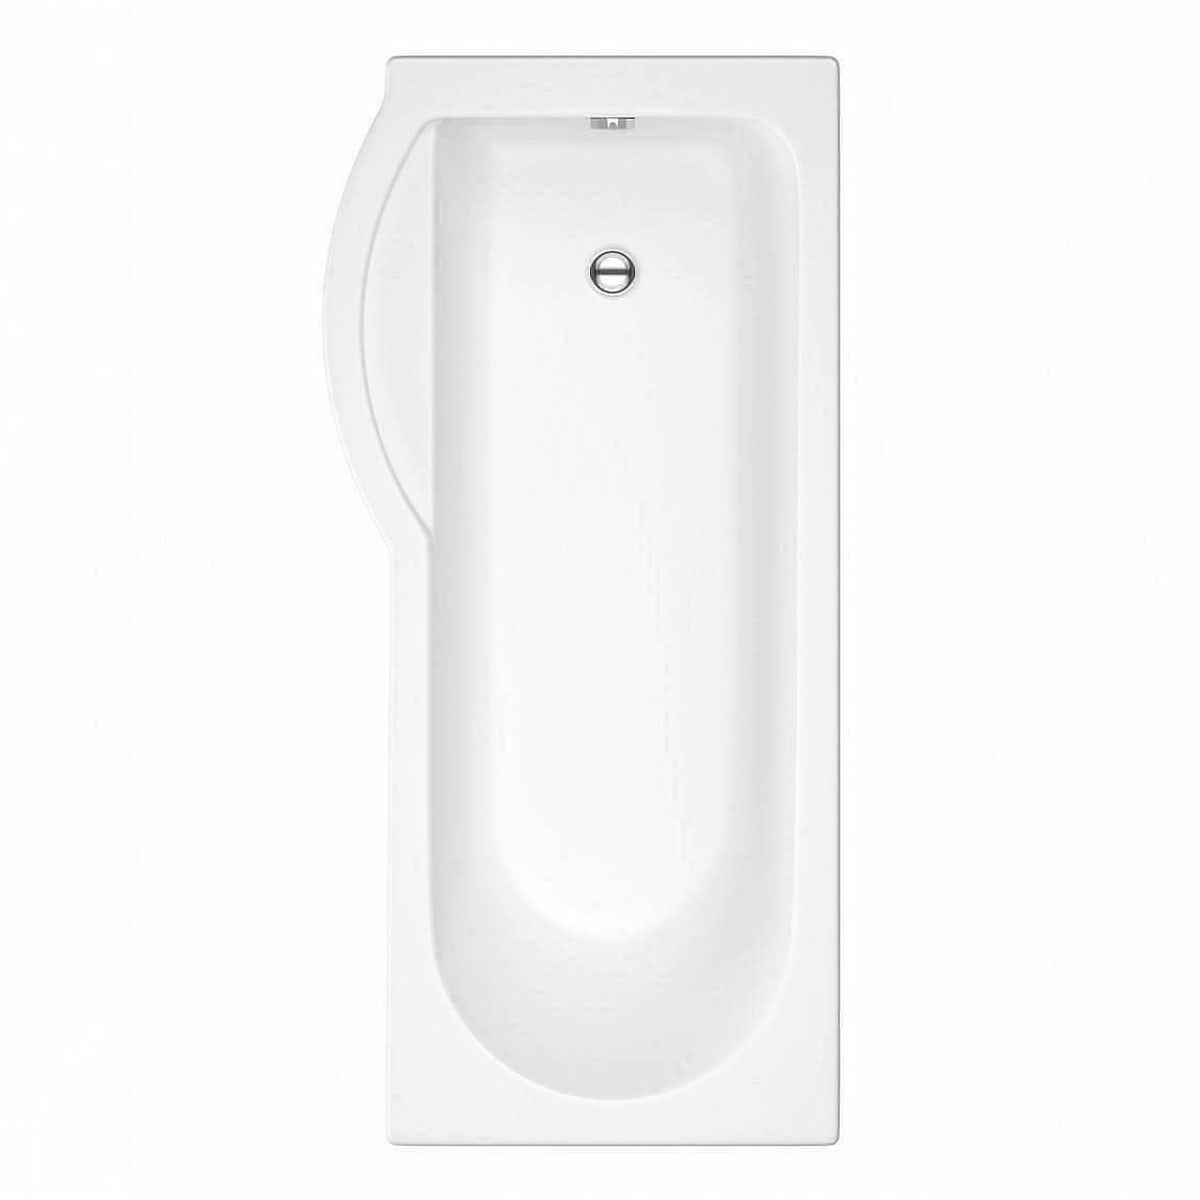 Shower Screen For P Shaped Bath Myspace Water Saving P Shape Shower Bath Left Hand With